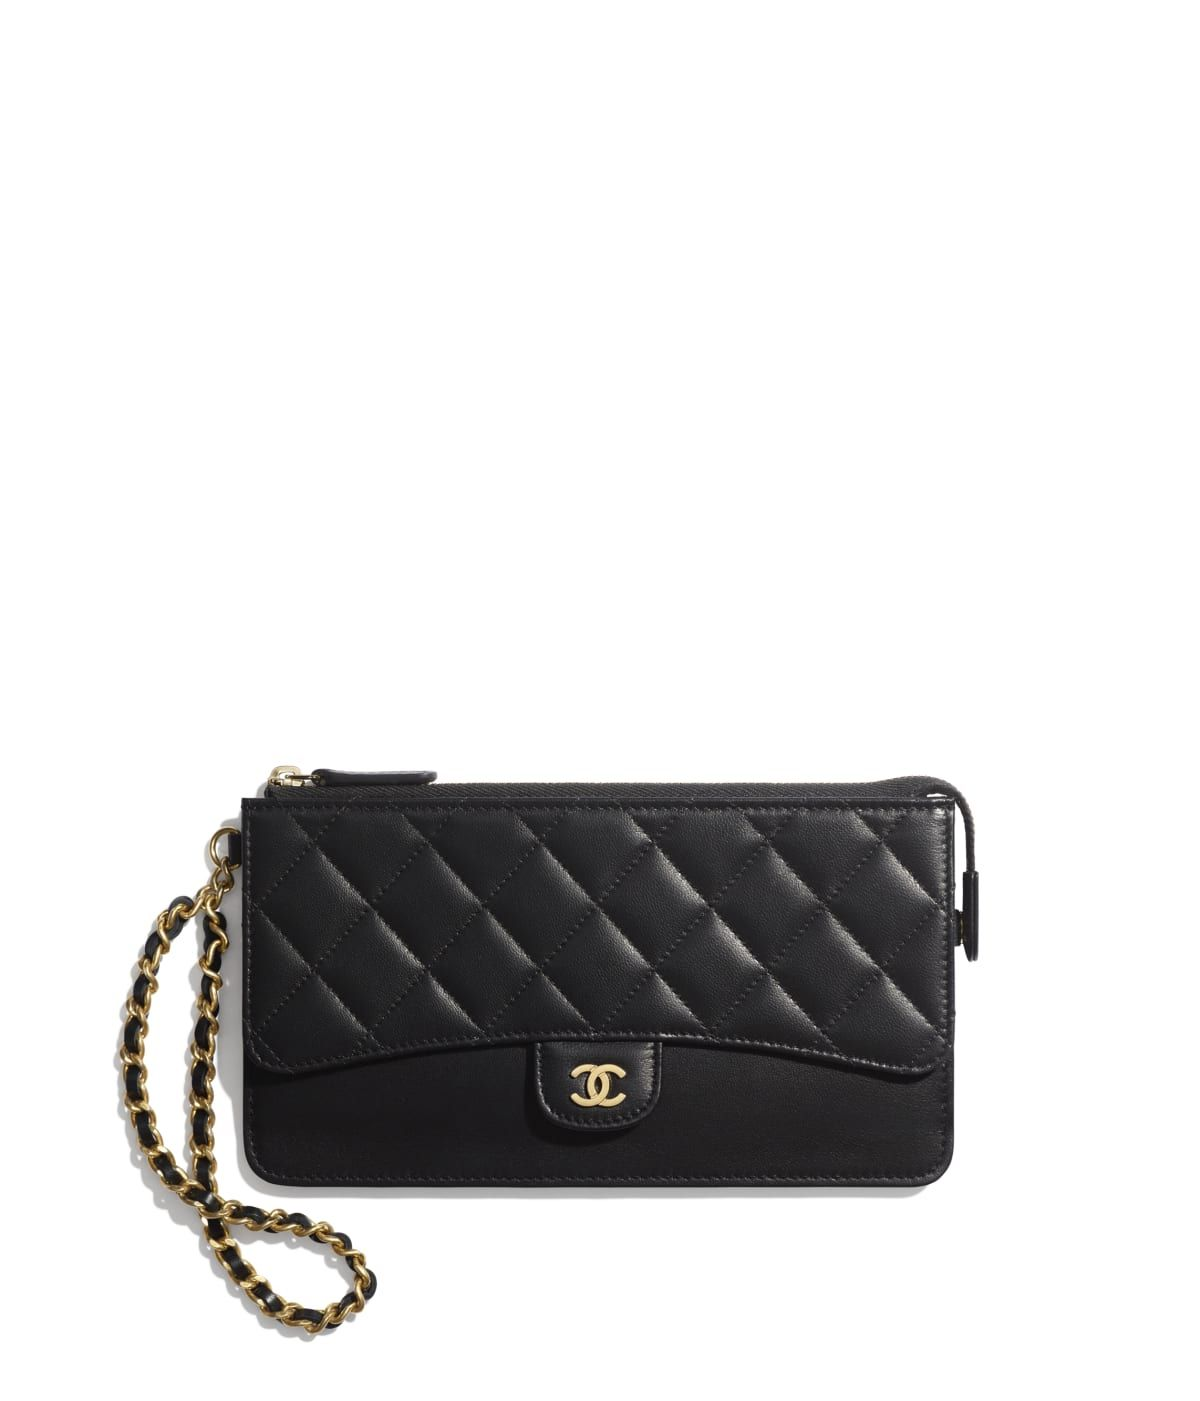 1b4e18aaafa08 Small Leather Goods of the Spring-Summer 2019 CHANEL Fashion collection :  Classic Pouch with Handle, lambskin, black on the CHANEL official website.